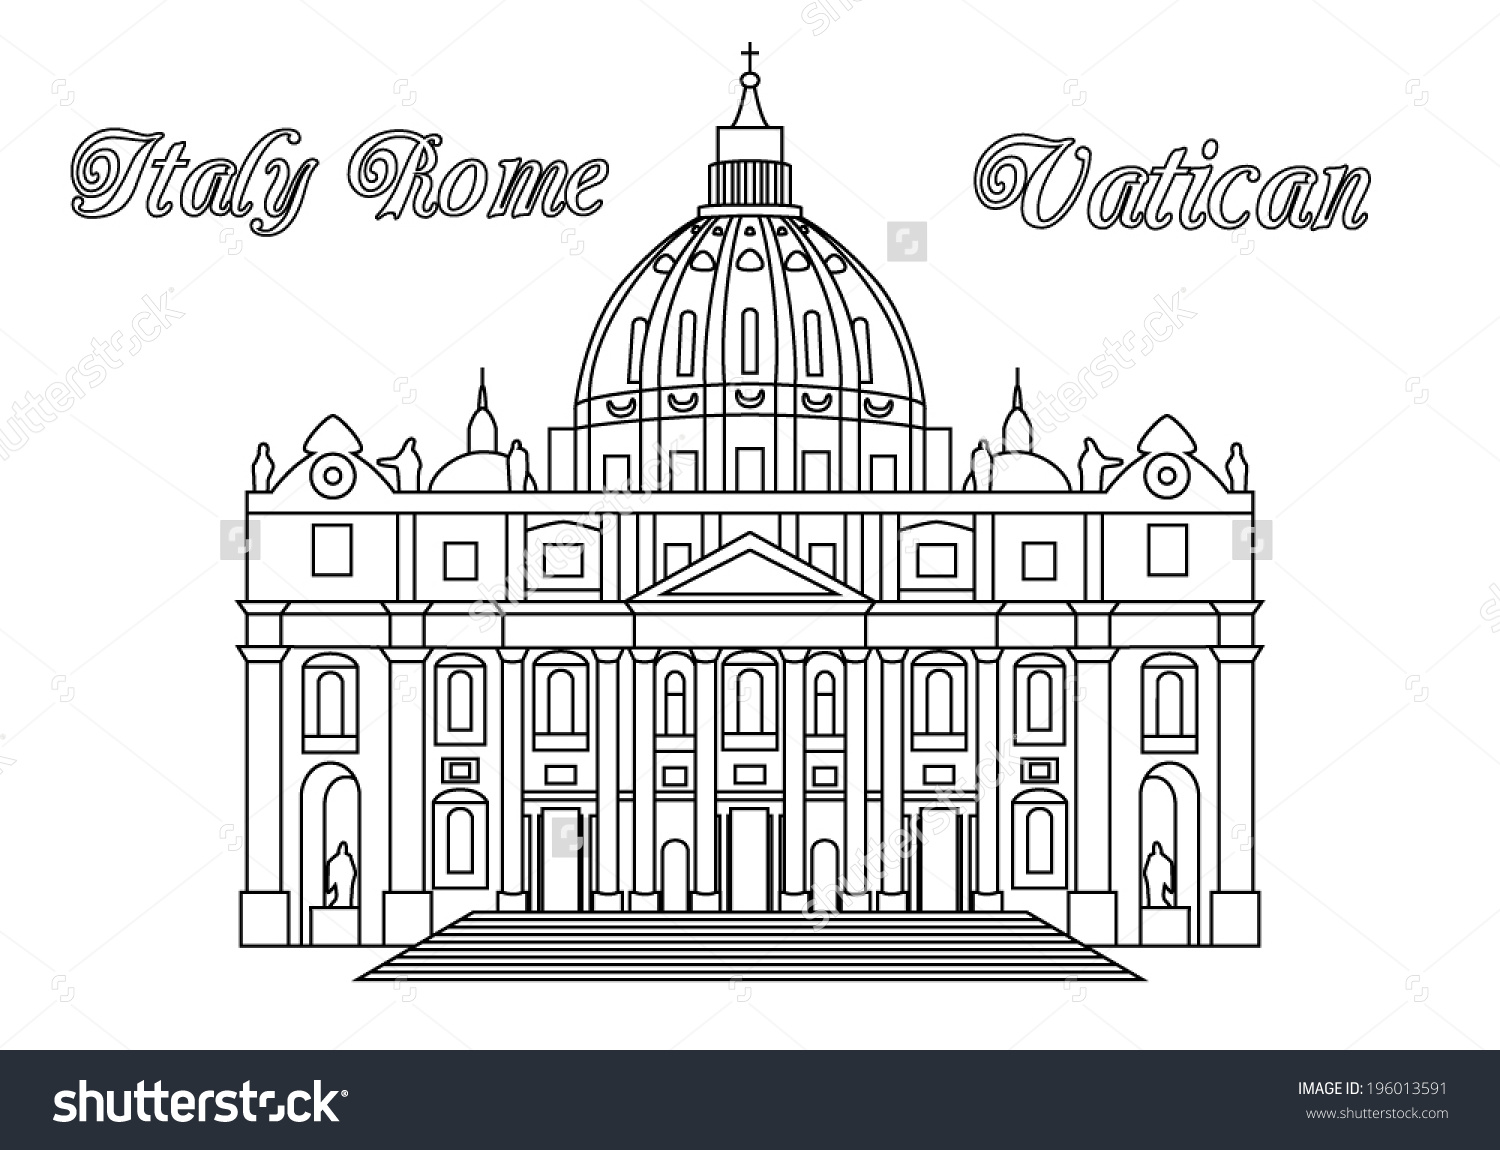 St Peters Basilica Vatican Rome Italy Stock Vector 196013591.